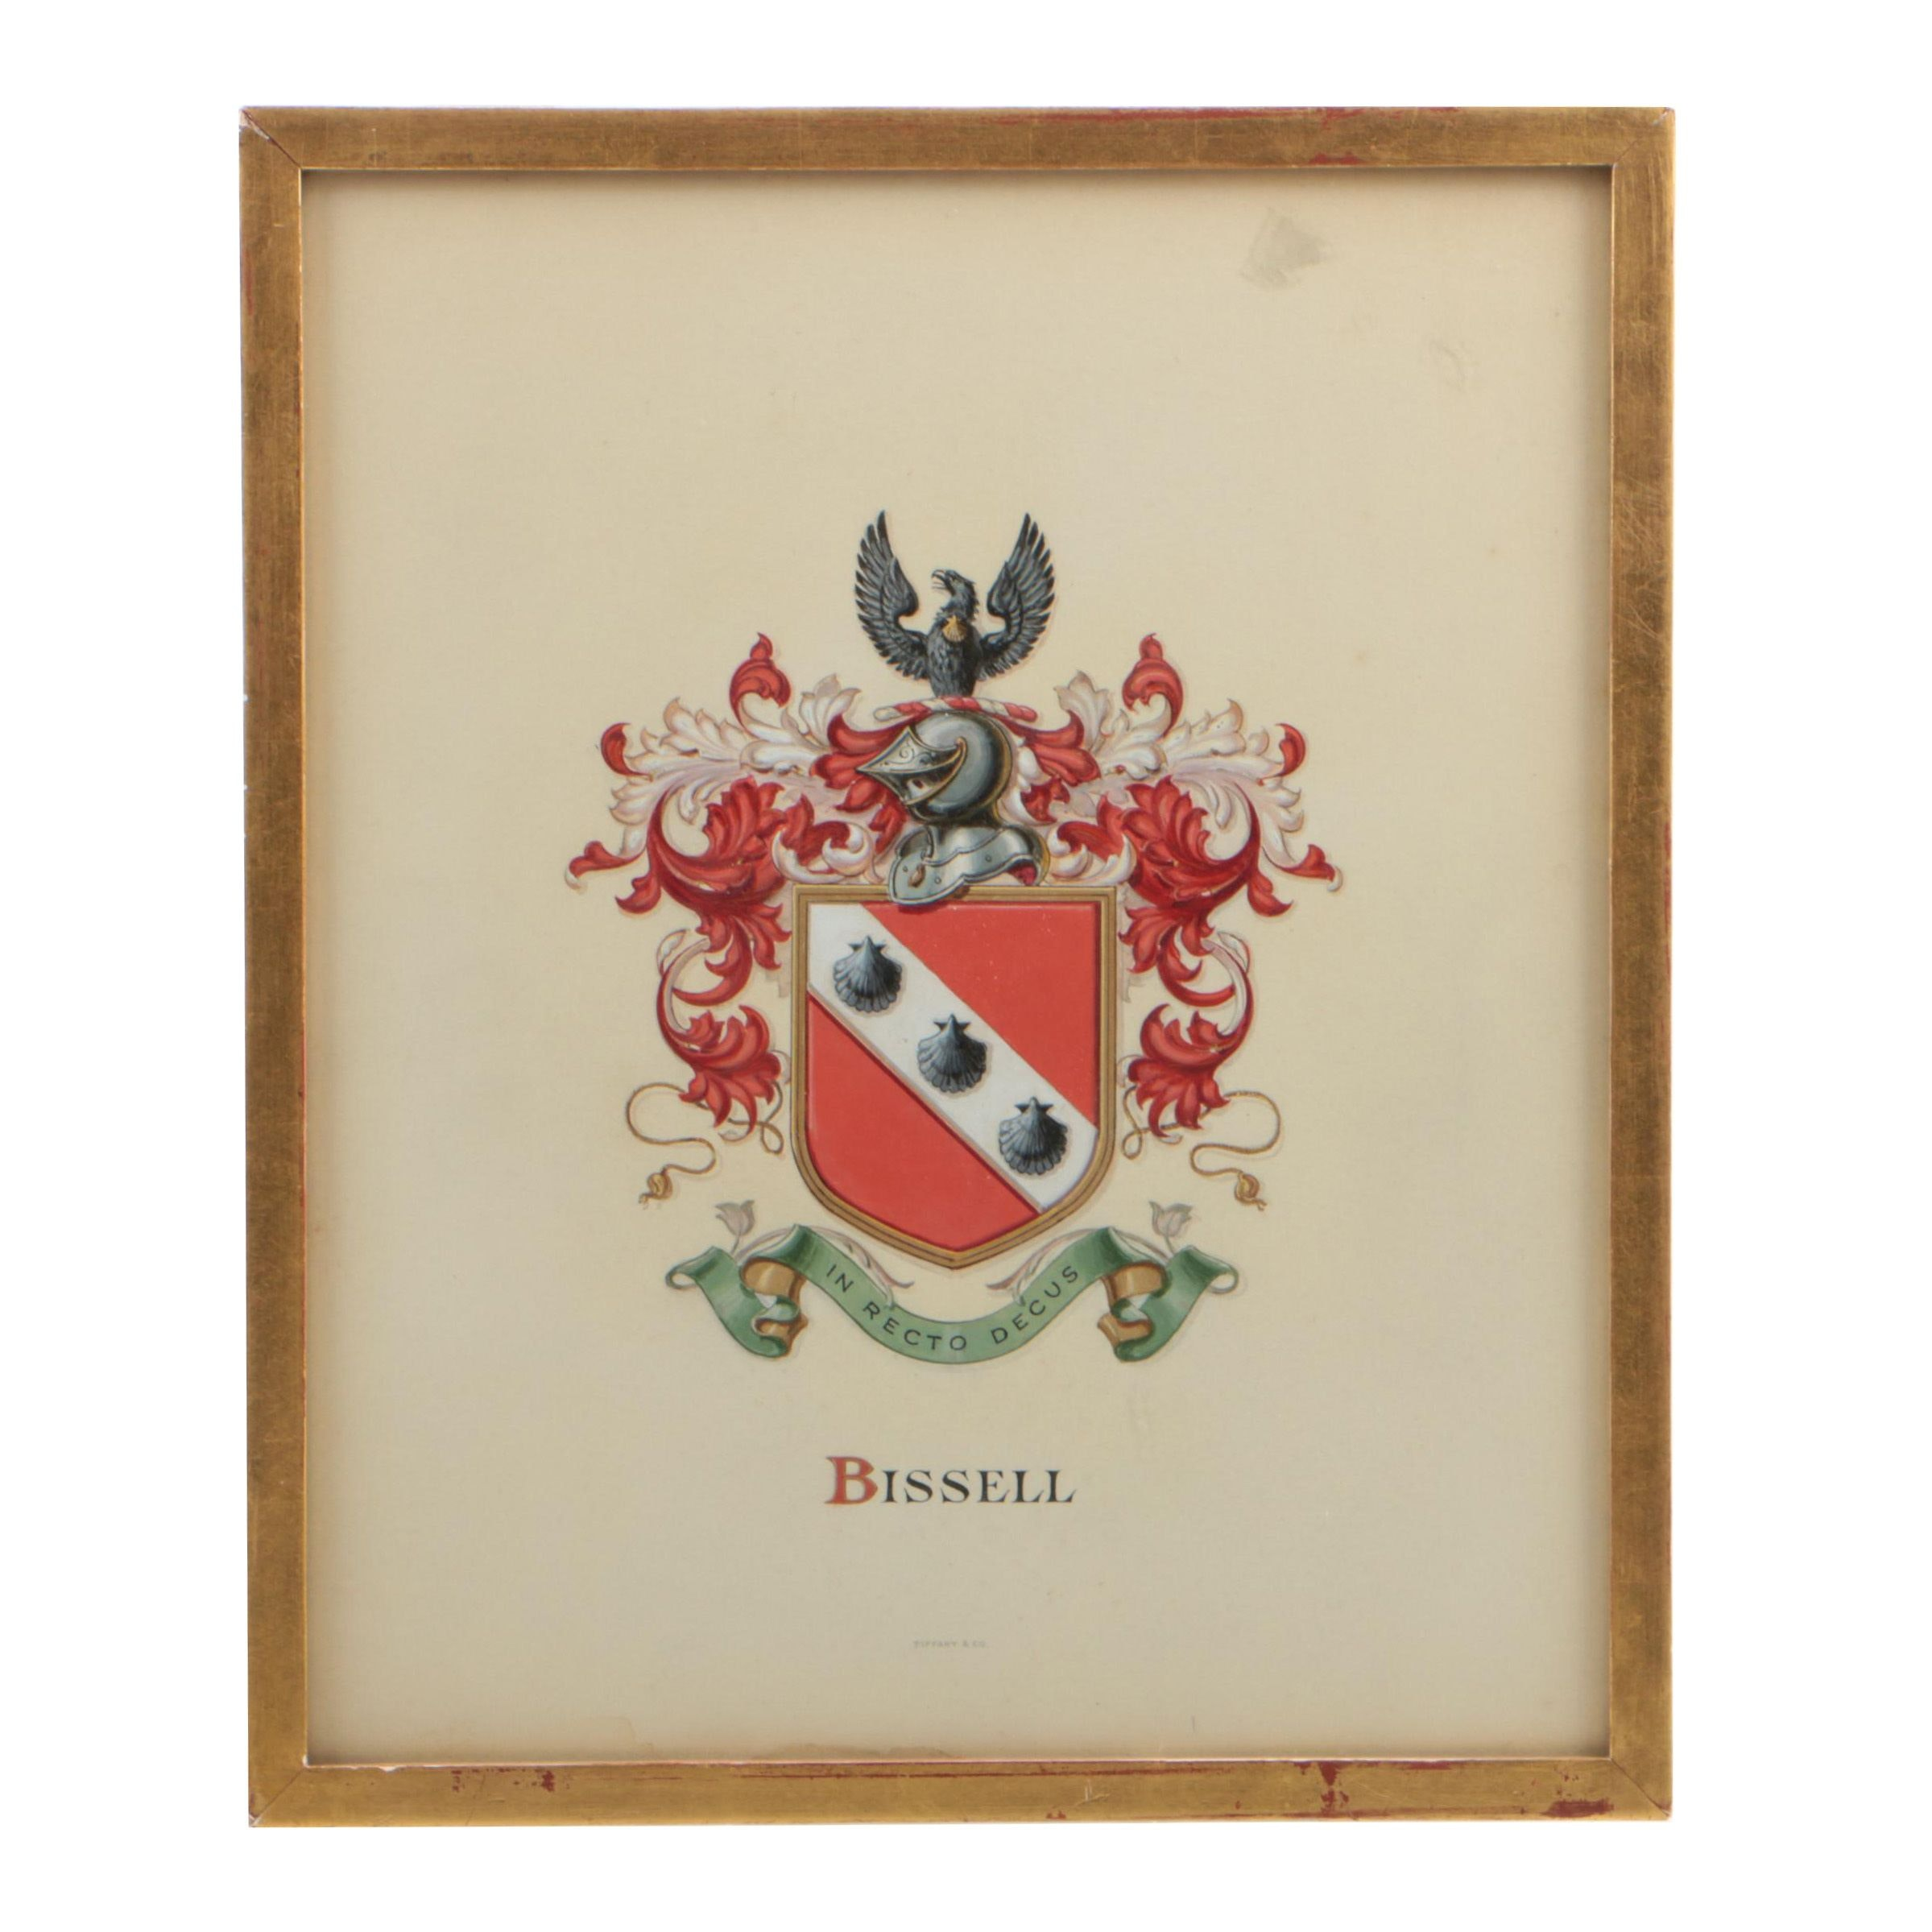 Watercolor Painting on Paper of Bissell Family Coat-of Arms